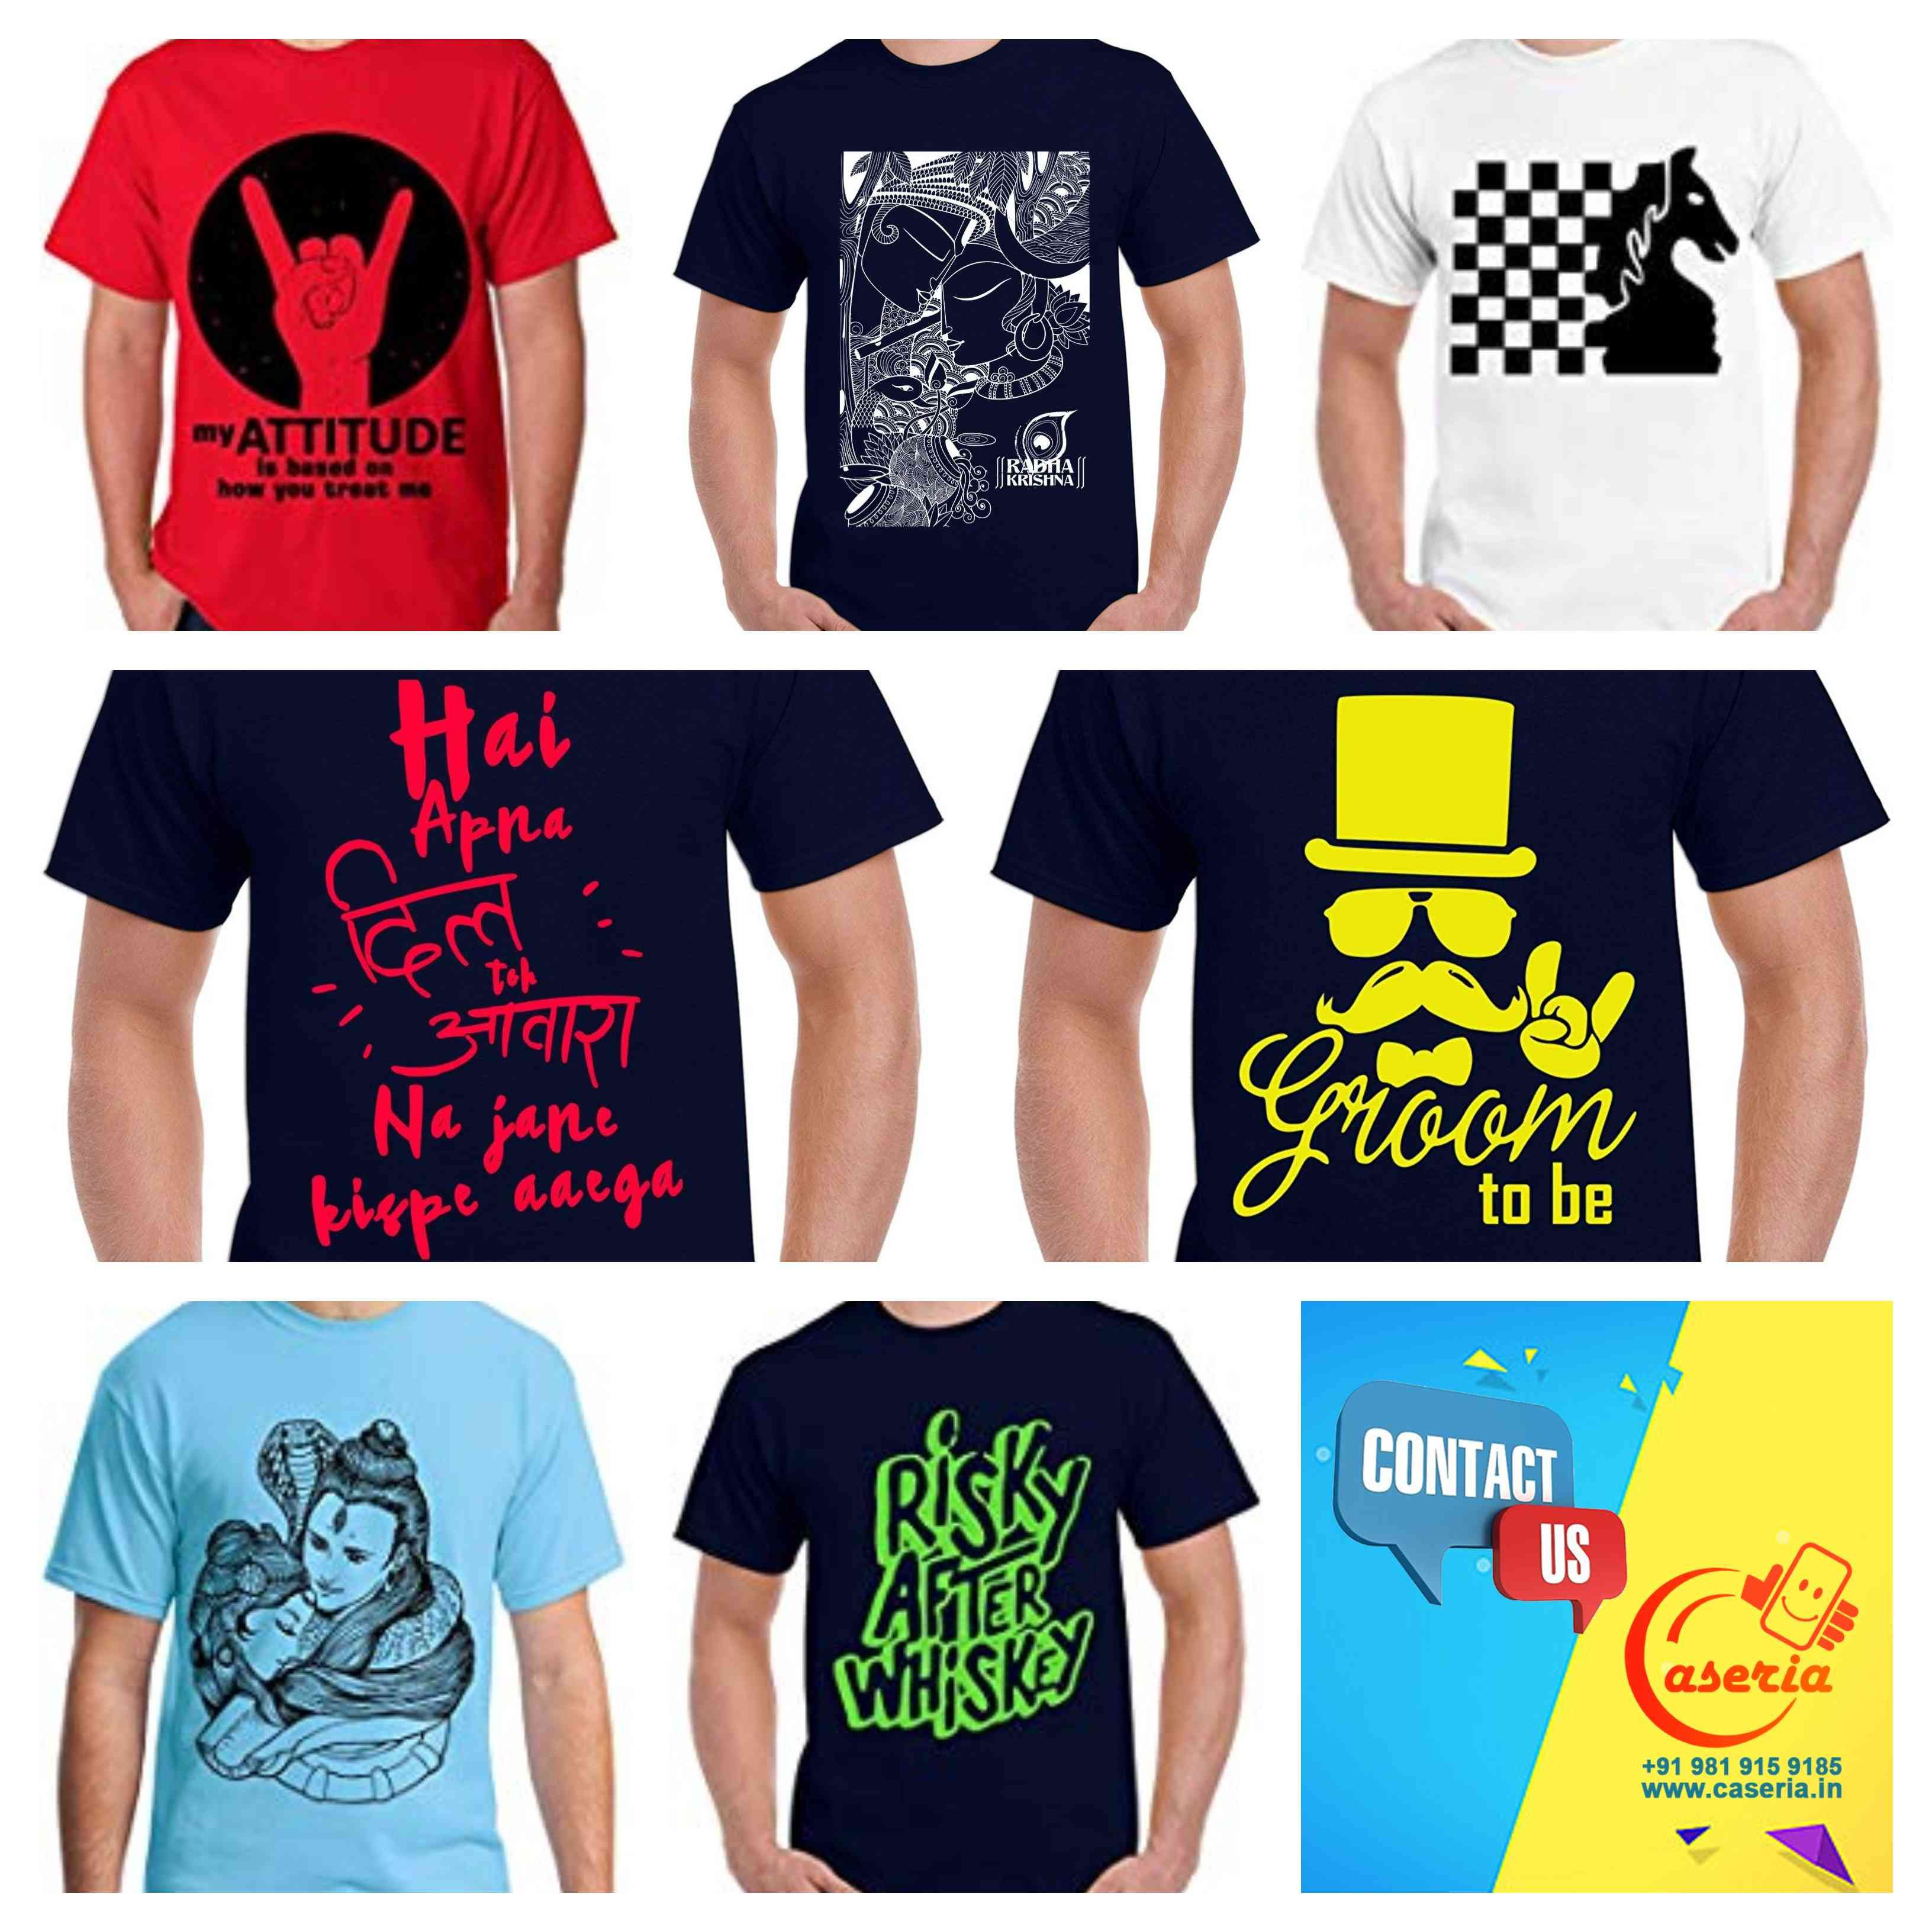 9f058606182 Bulk Order for Customized or printed T-Shirts in India? Contact- http: